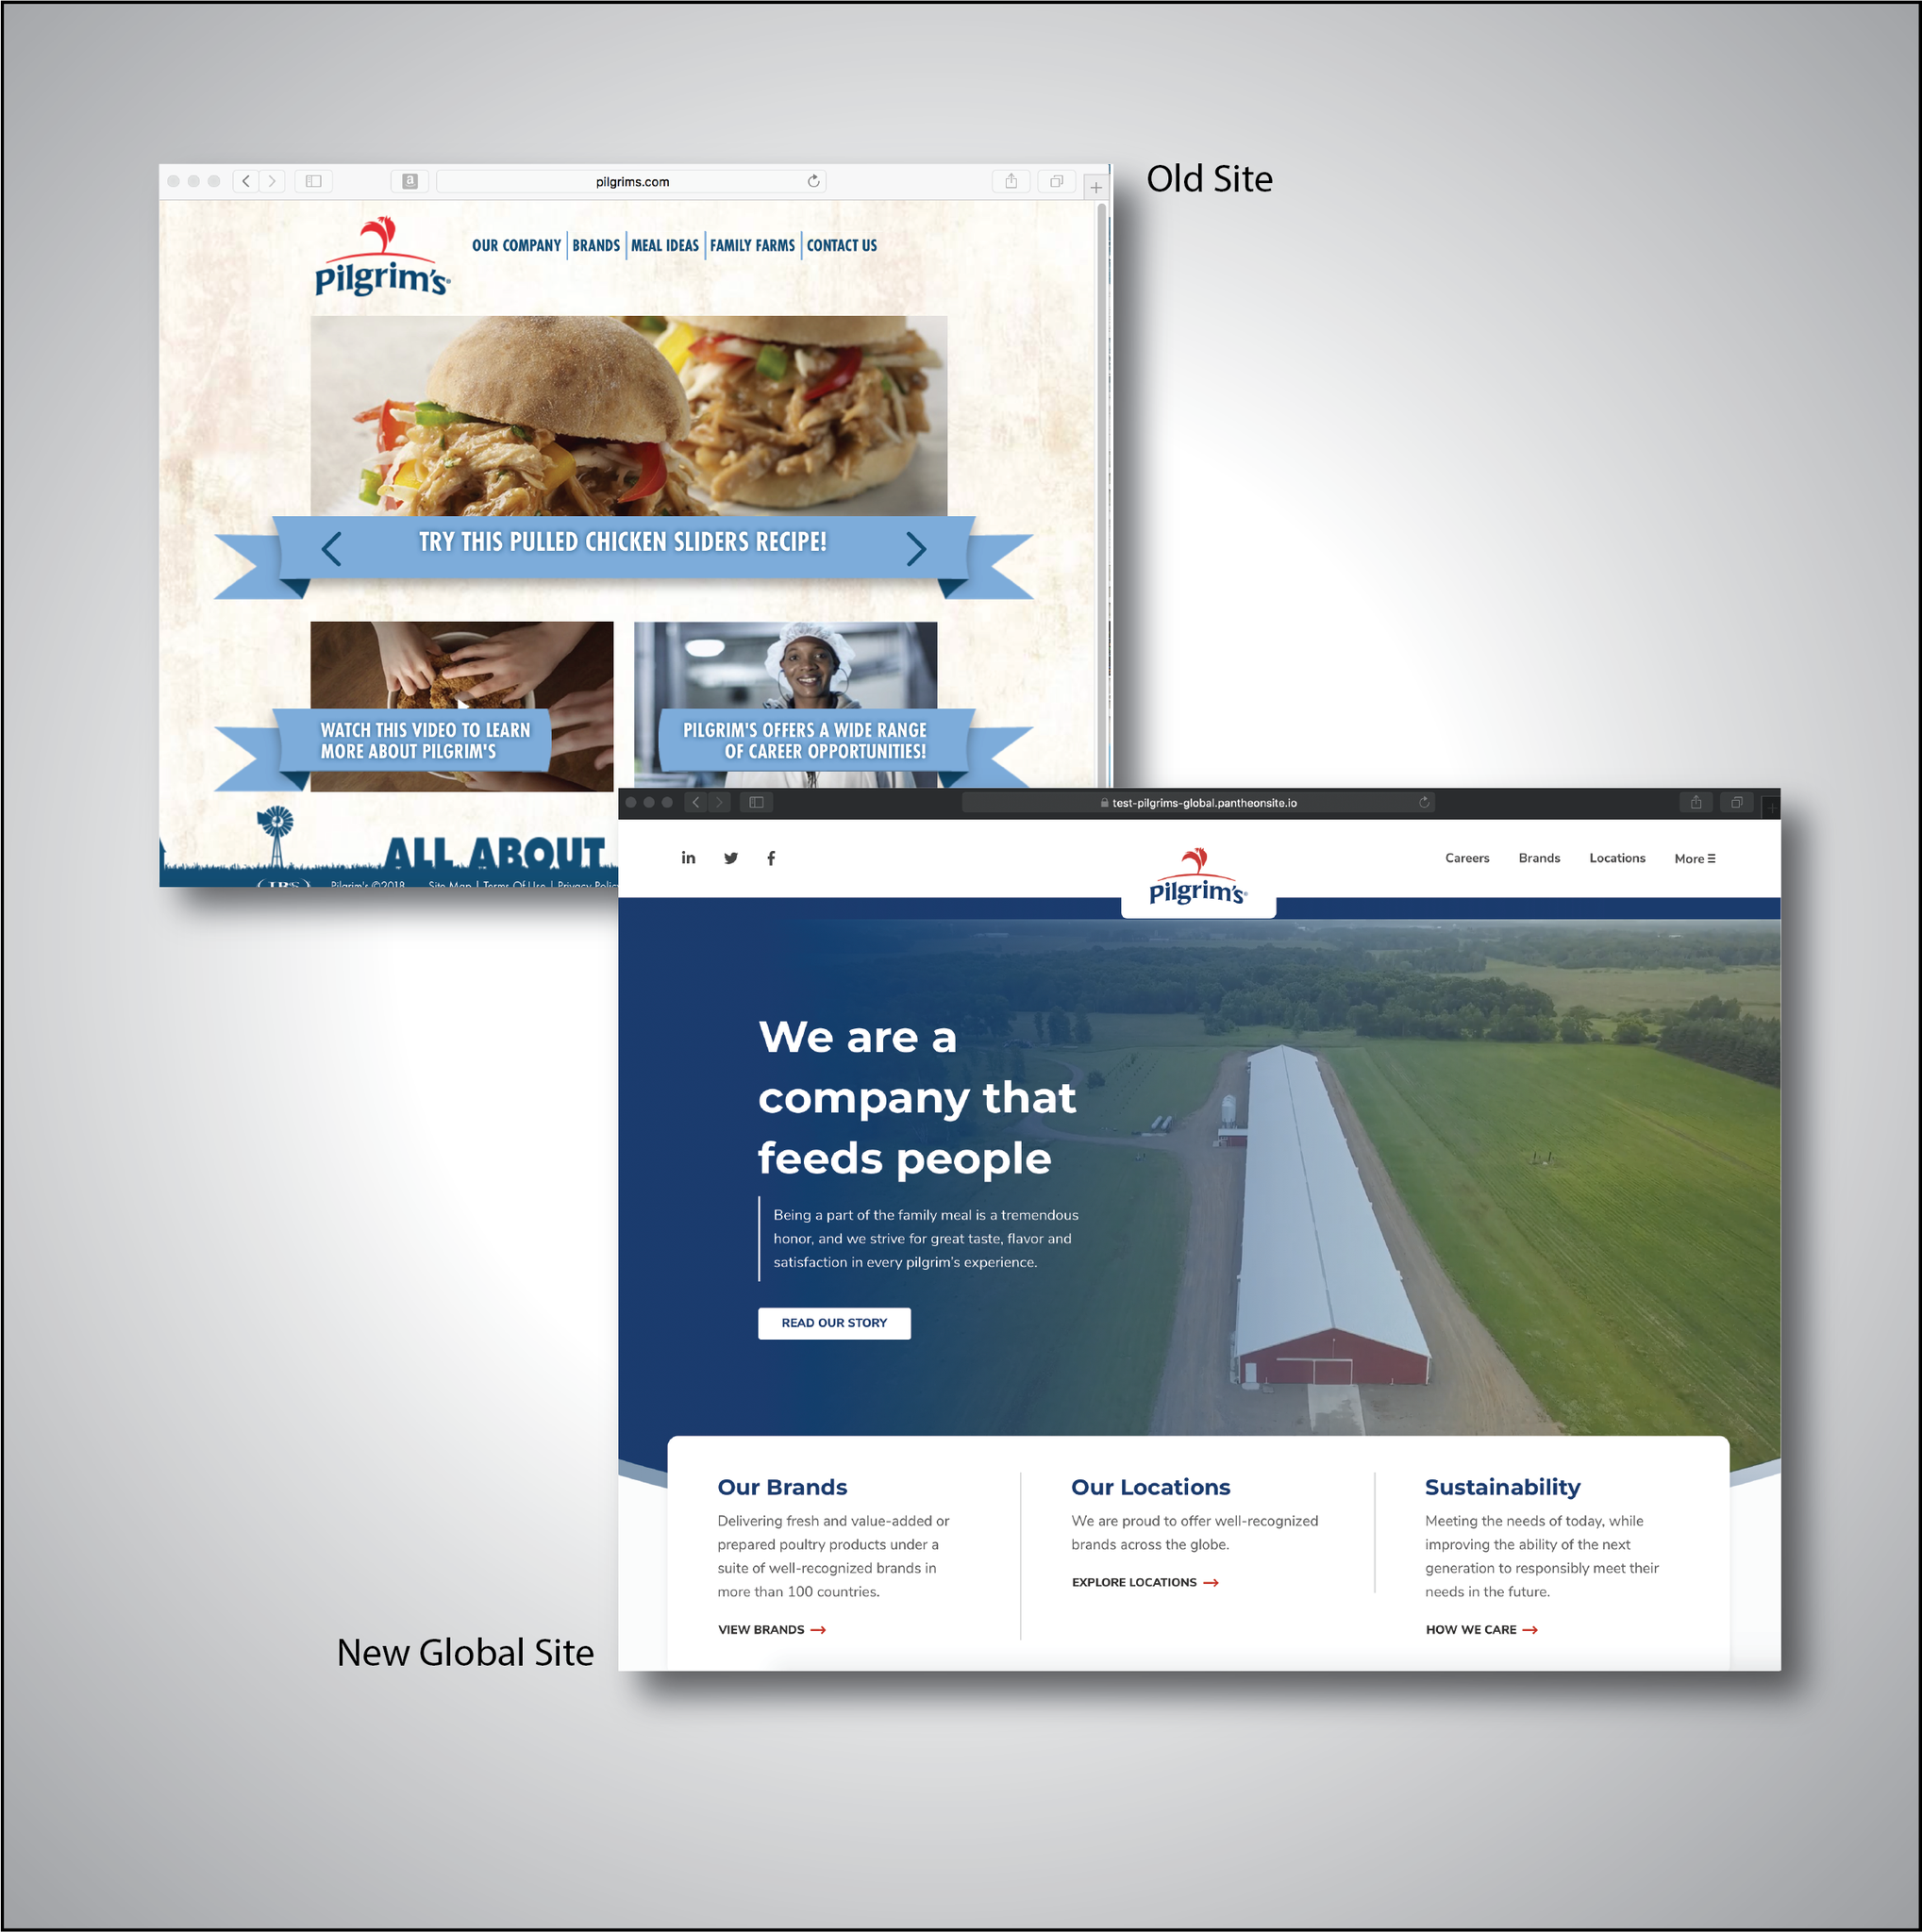 Creative Direction at Pilgrims Chicken. Created 2 brand new websites in 2018 making a Global and Branded presence.